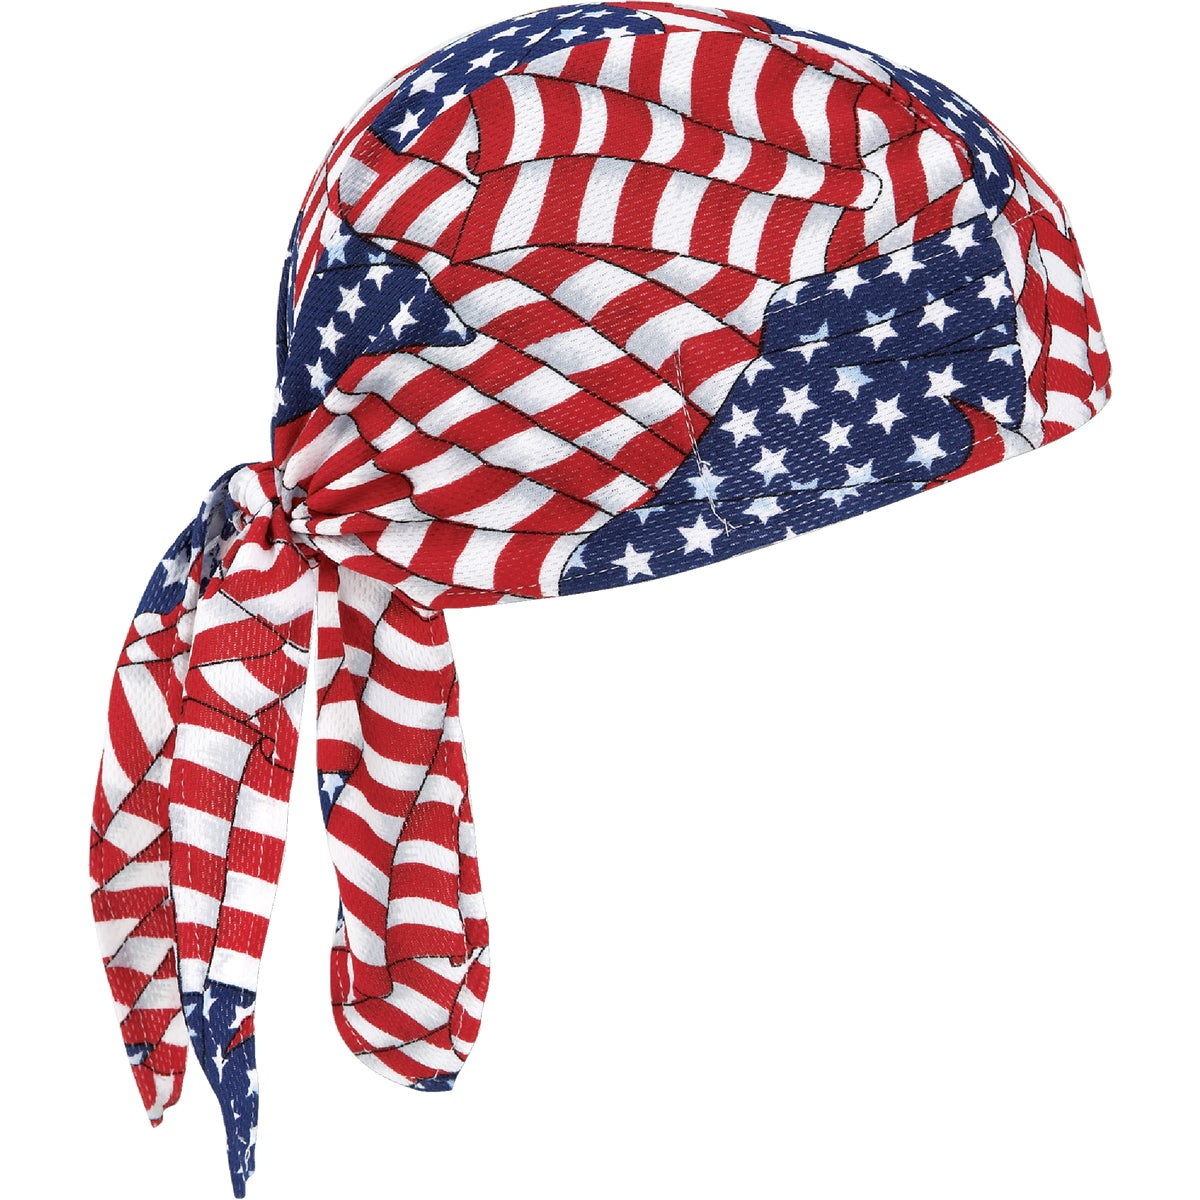 STARS STRIPES DEW RAG - 12477 by Ergodyne Incom